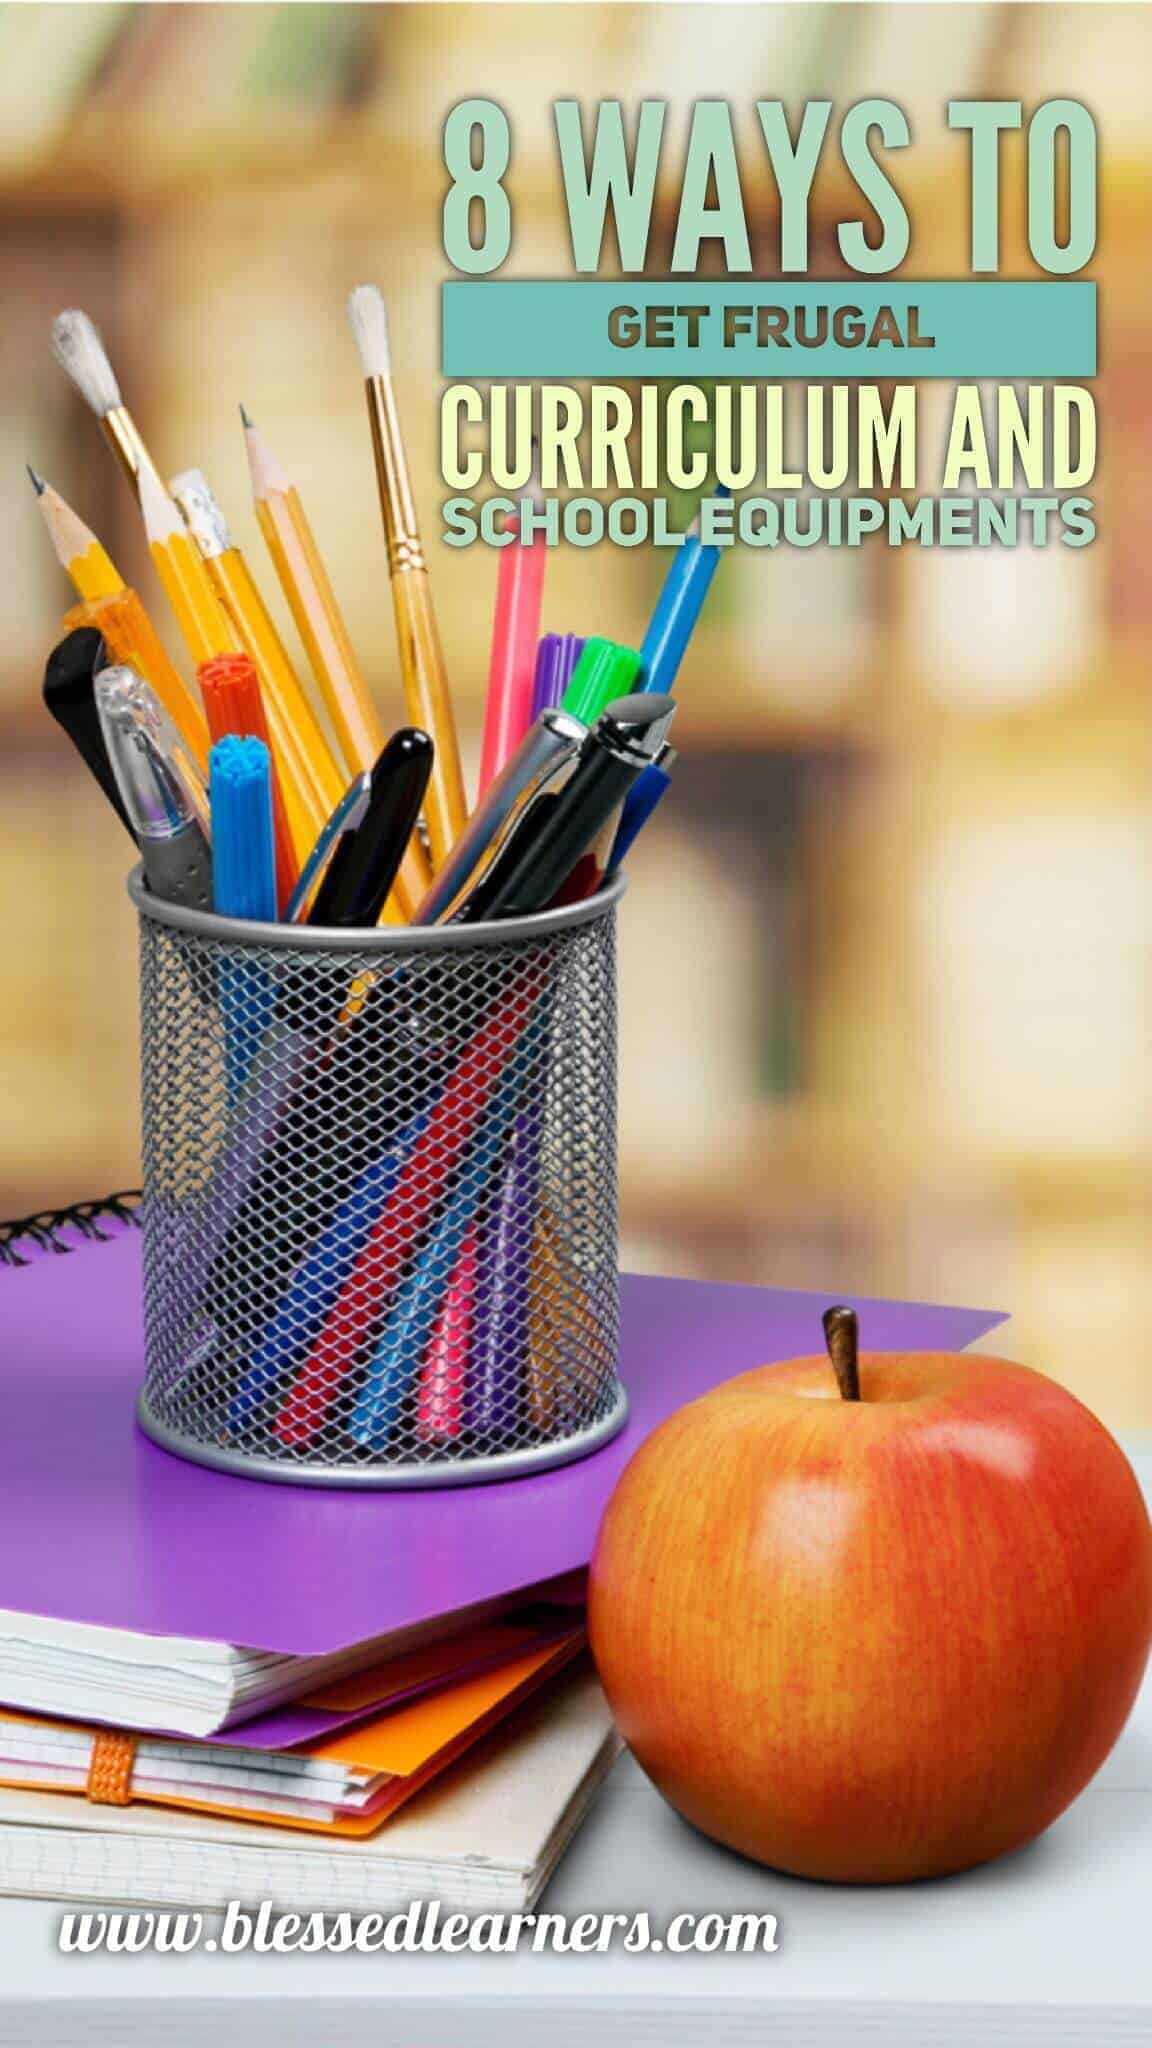 8 Ways to Get Frugal Curriculum and Equipment for homeschool